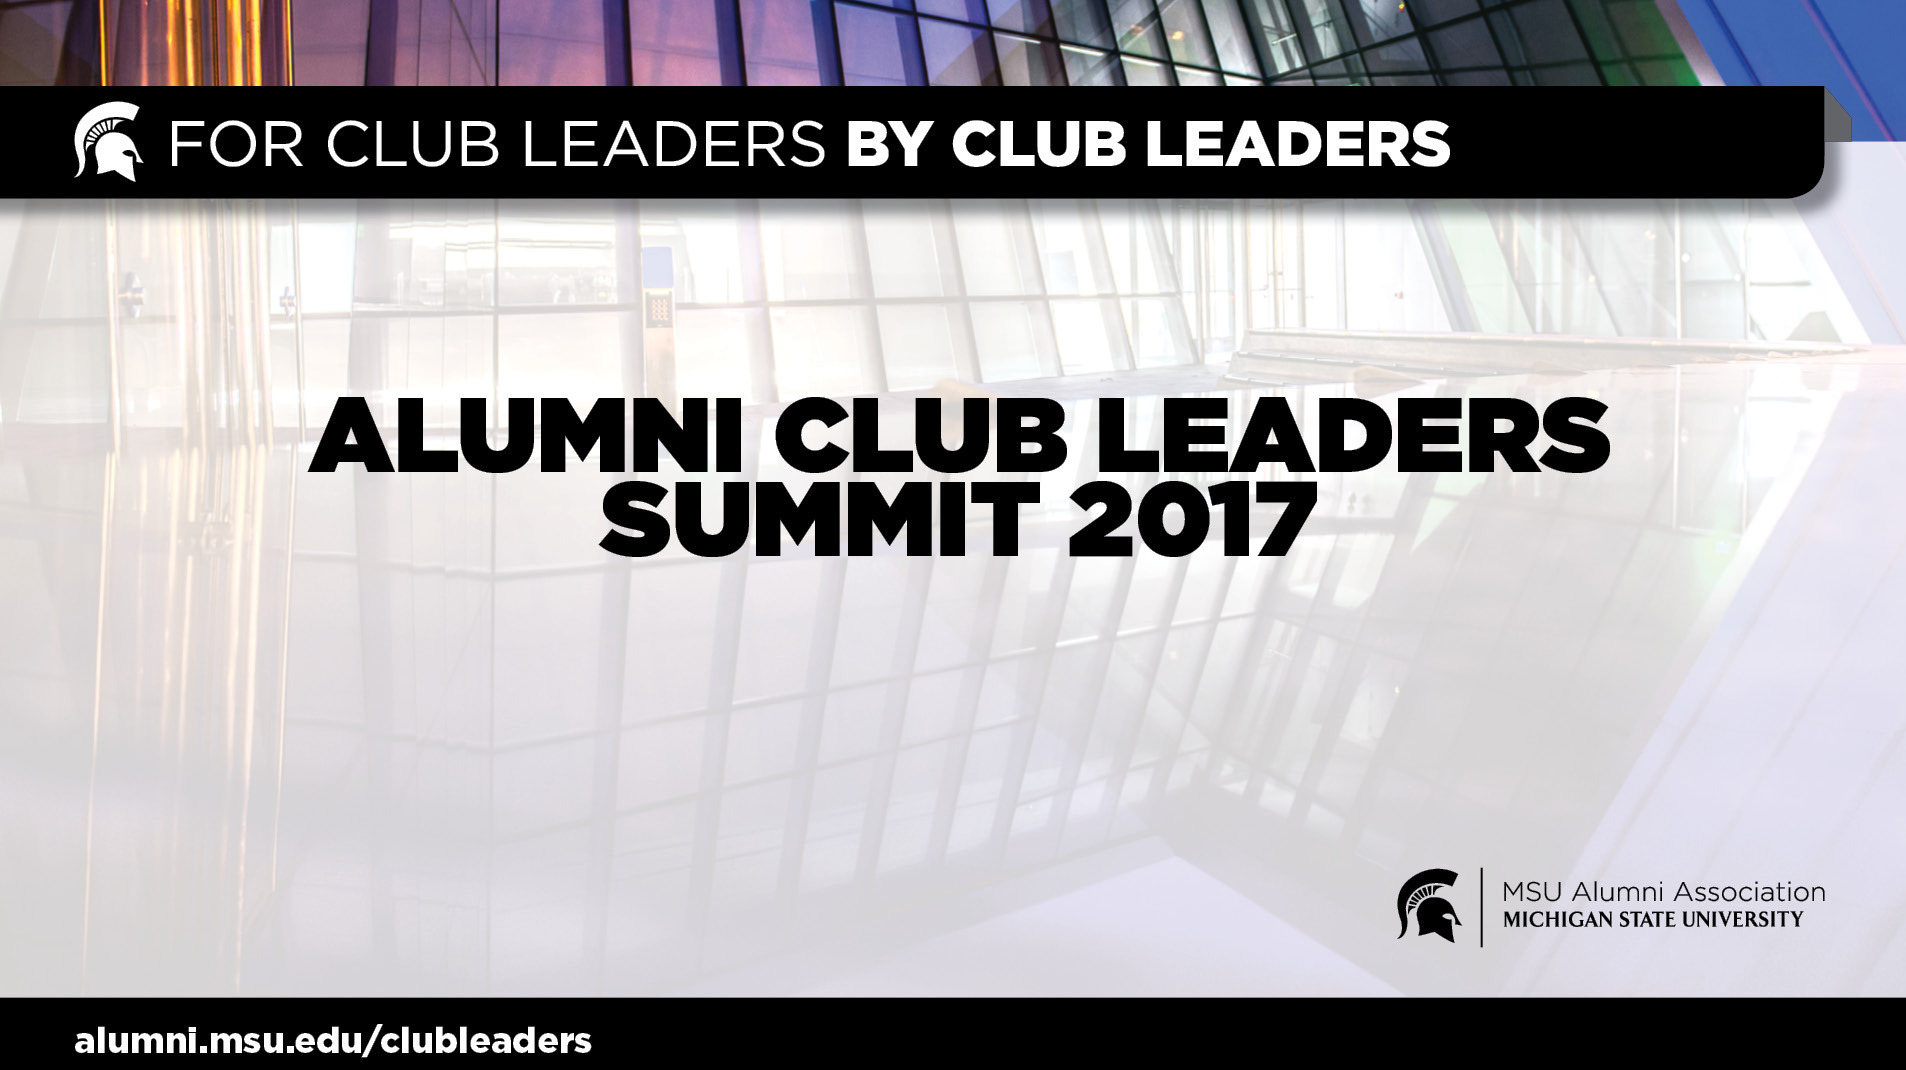 livestream cover image for Alumni Club Leaders Summit 2017